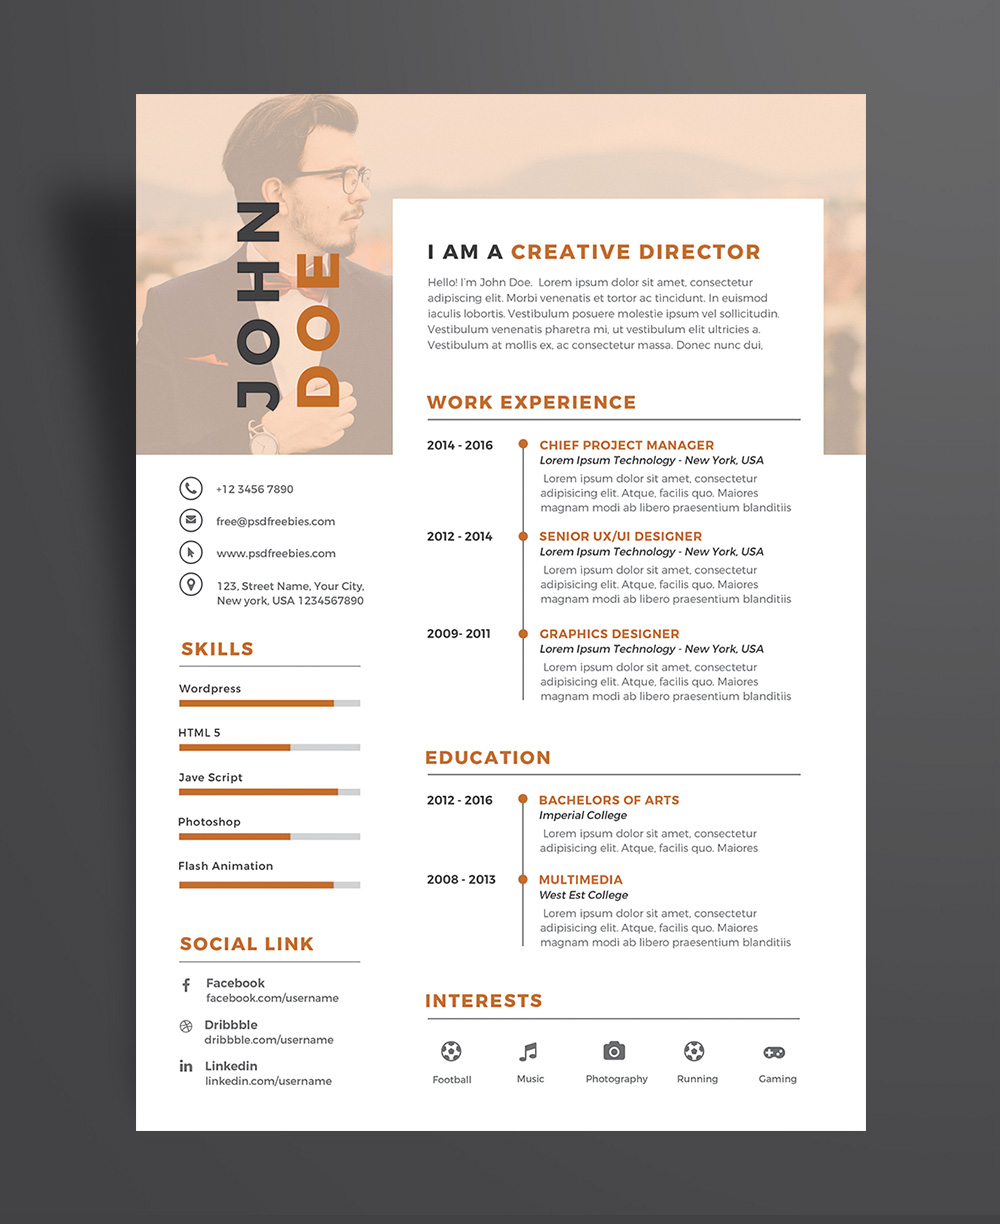 Creative Executive Resume (CV) Design Template PSD File (4)